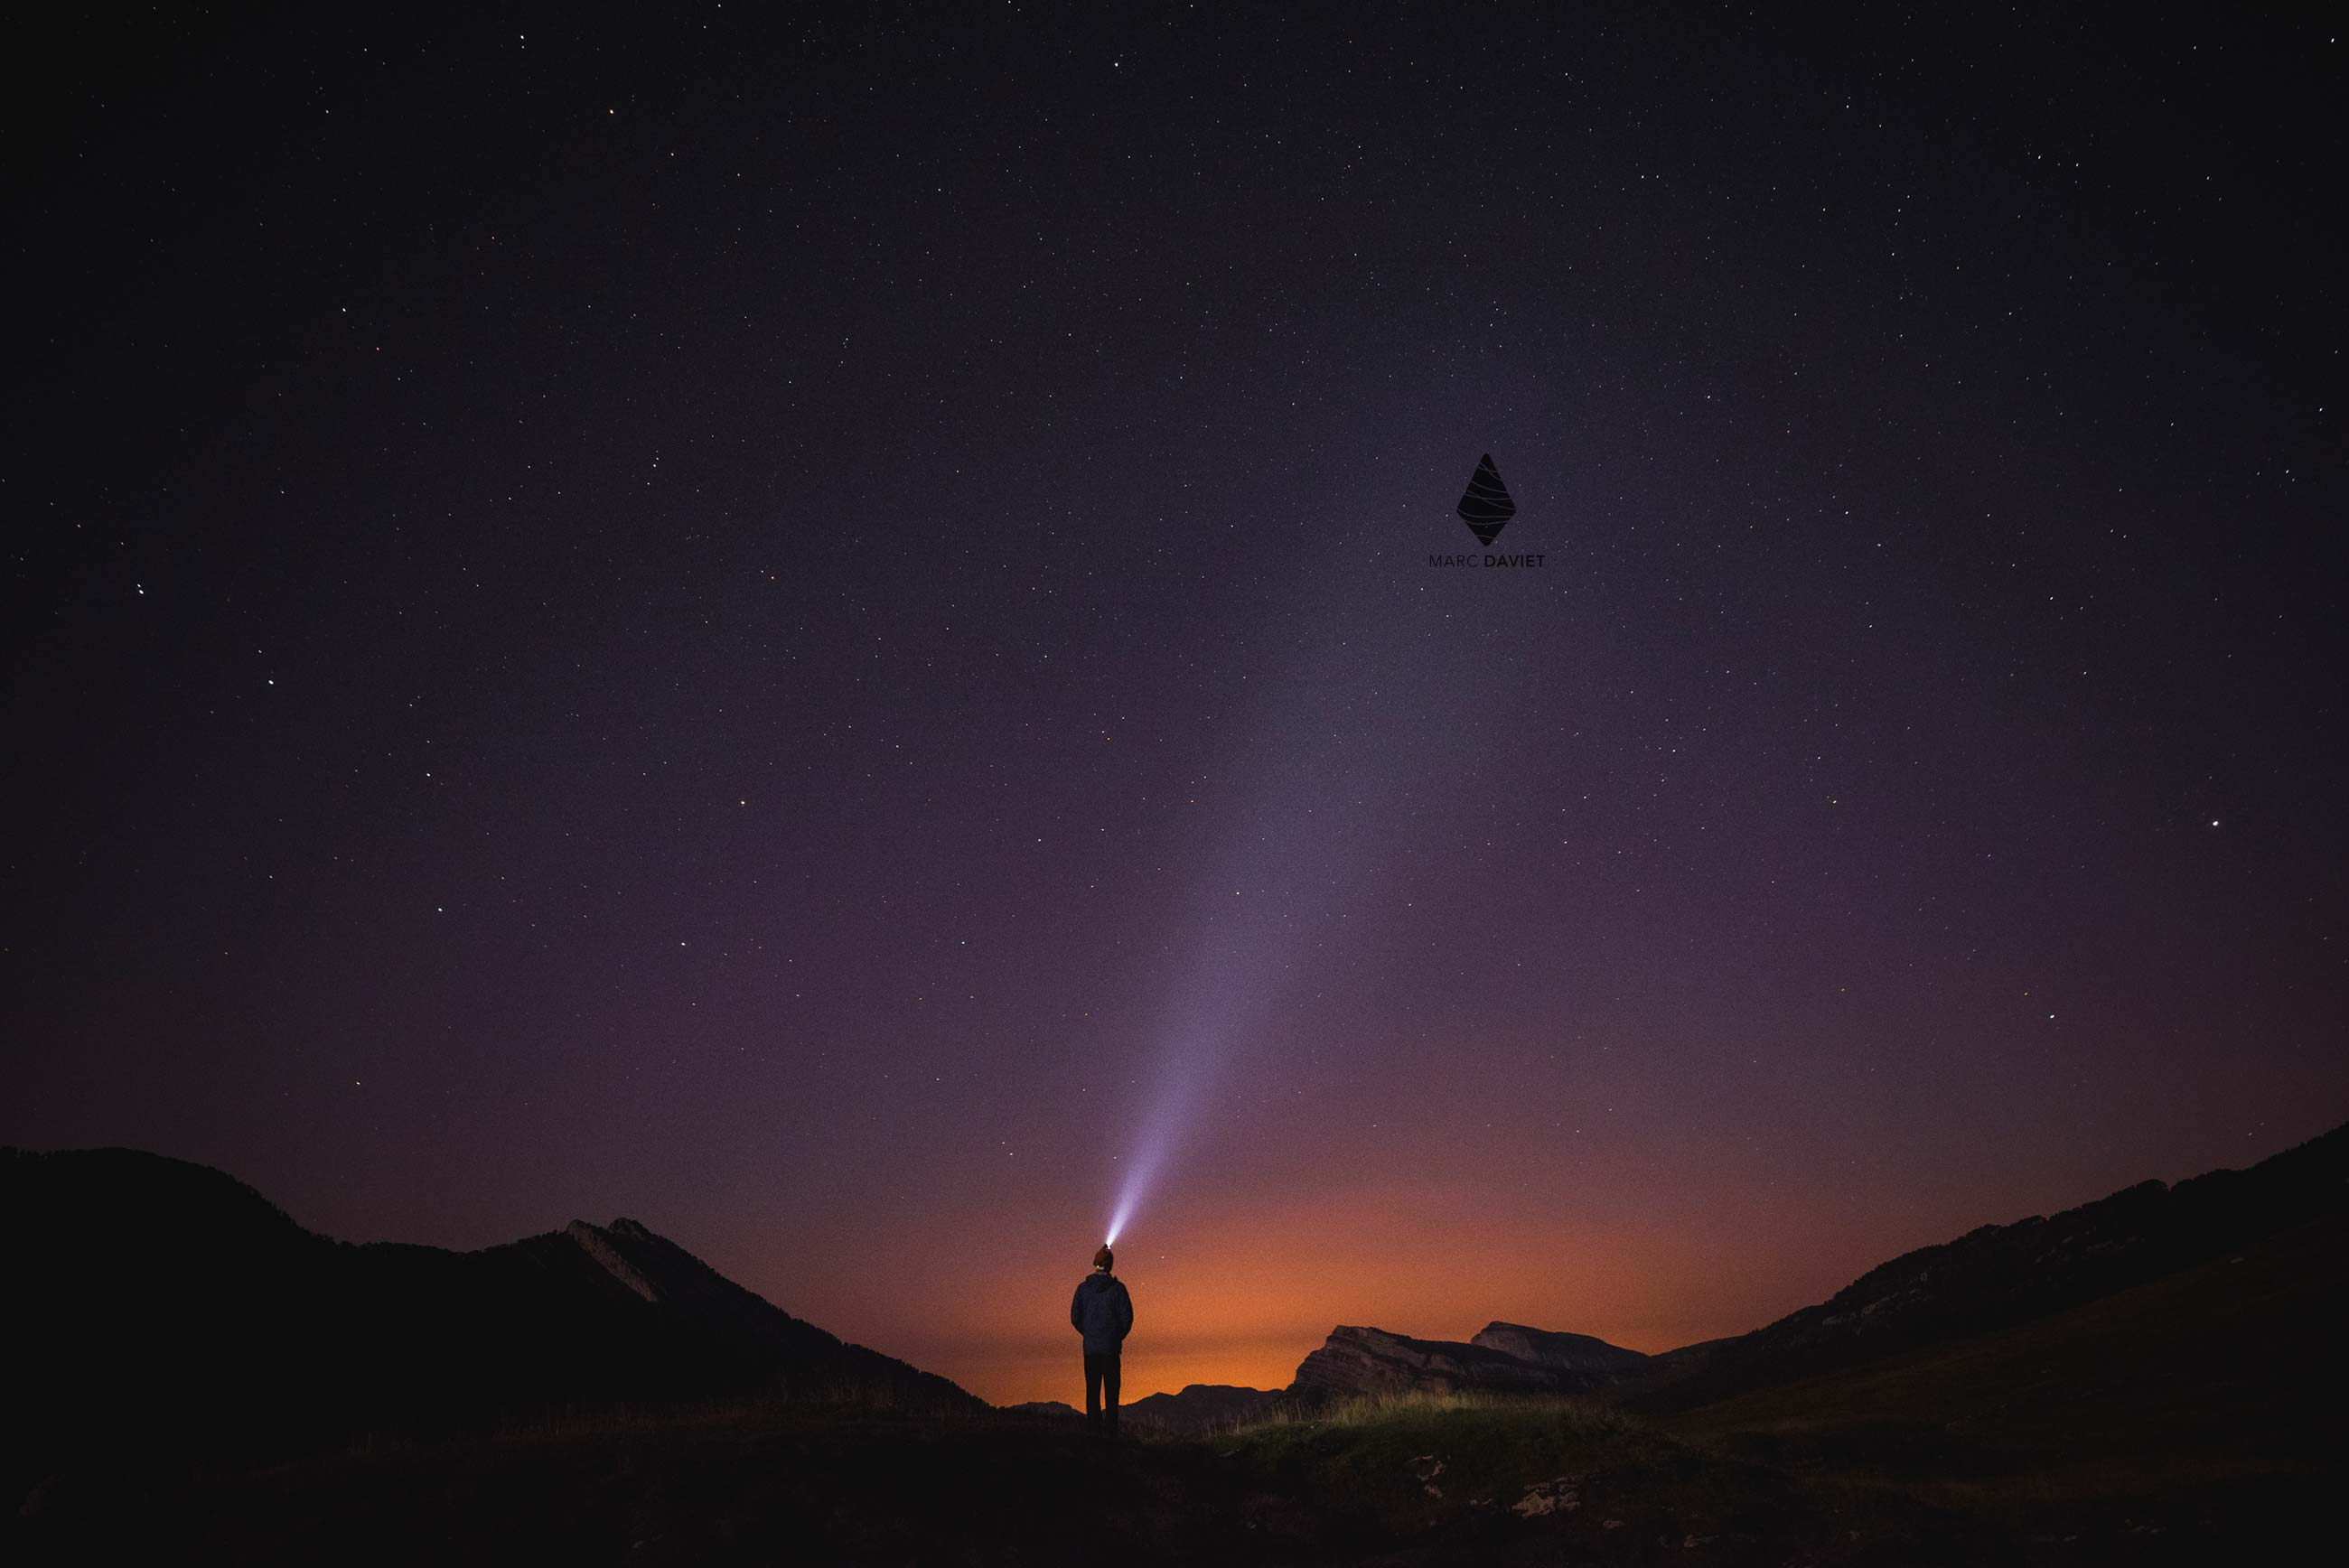 Headlamp at night - Marc Daviet Photography